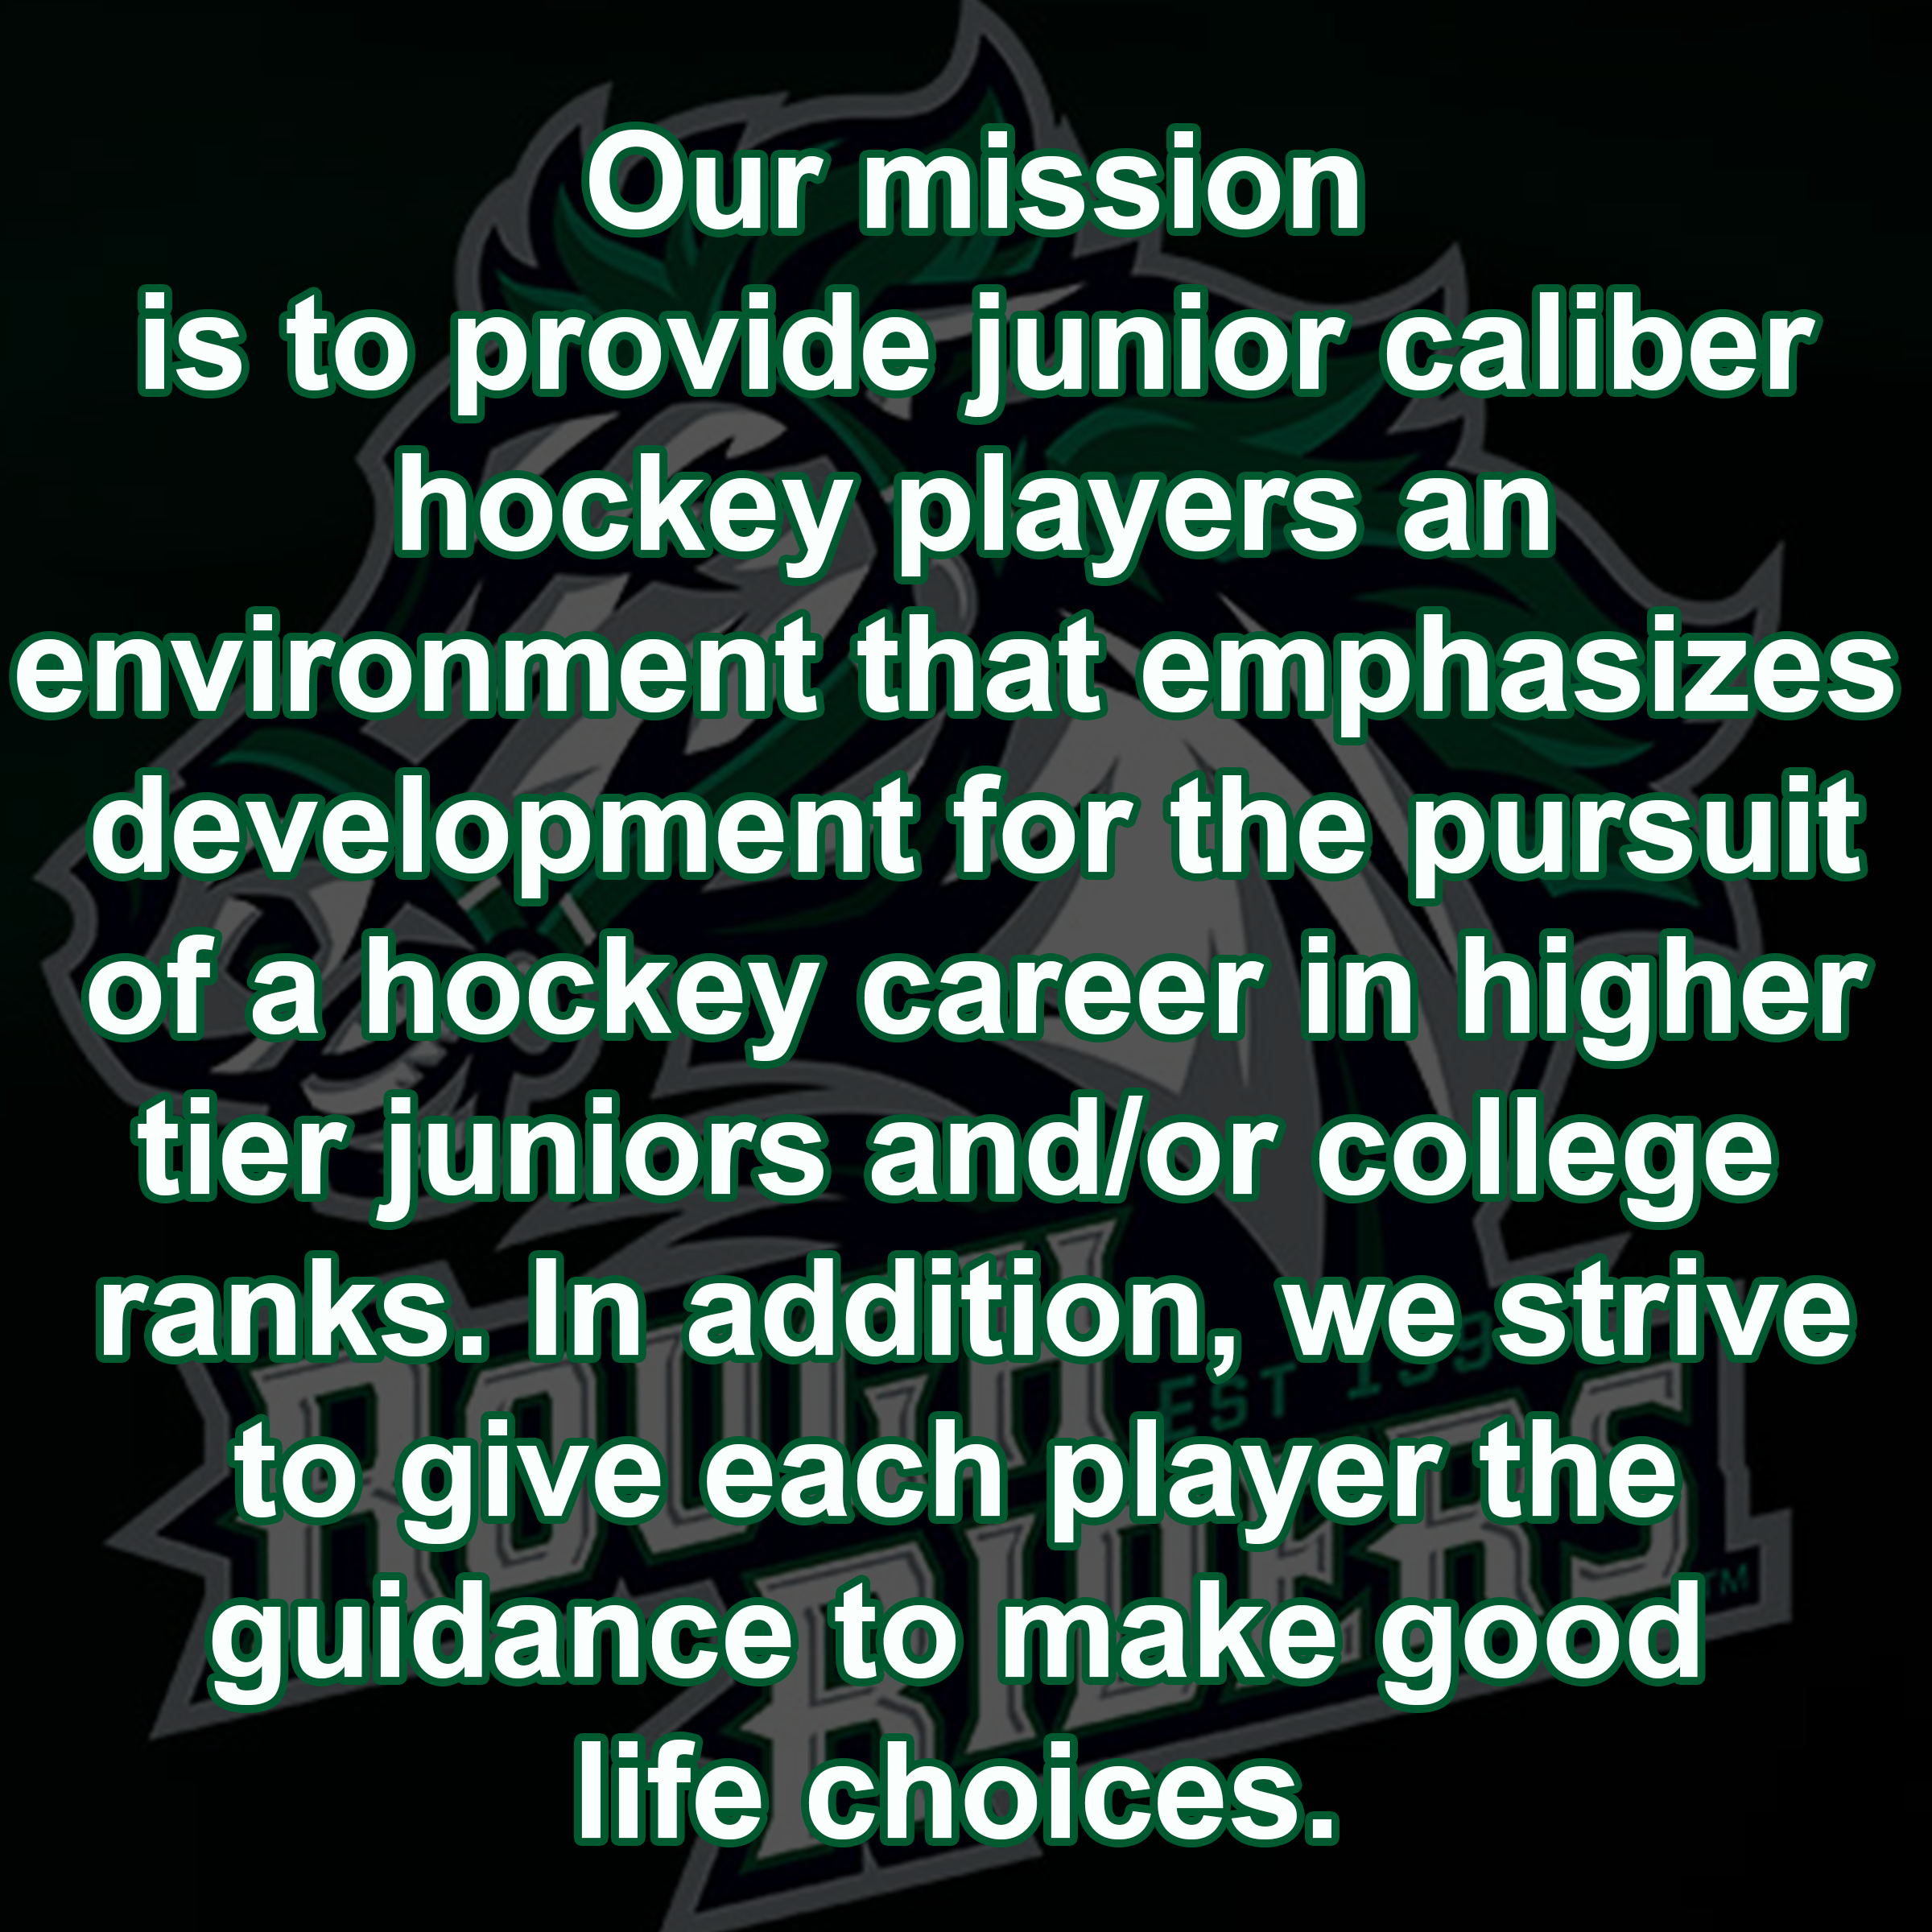 Our mission is to provide junior caliber hockey players an environment that emphasized development for the pursuit of a hockey career in higher tier juniors and/or college ranks. In addition, we strive to give each player the guidance to make good life ch